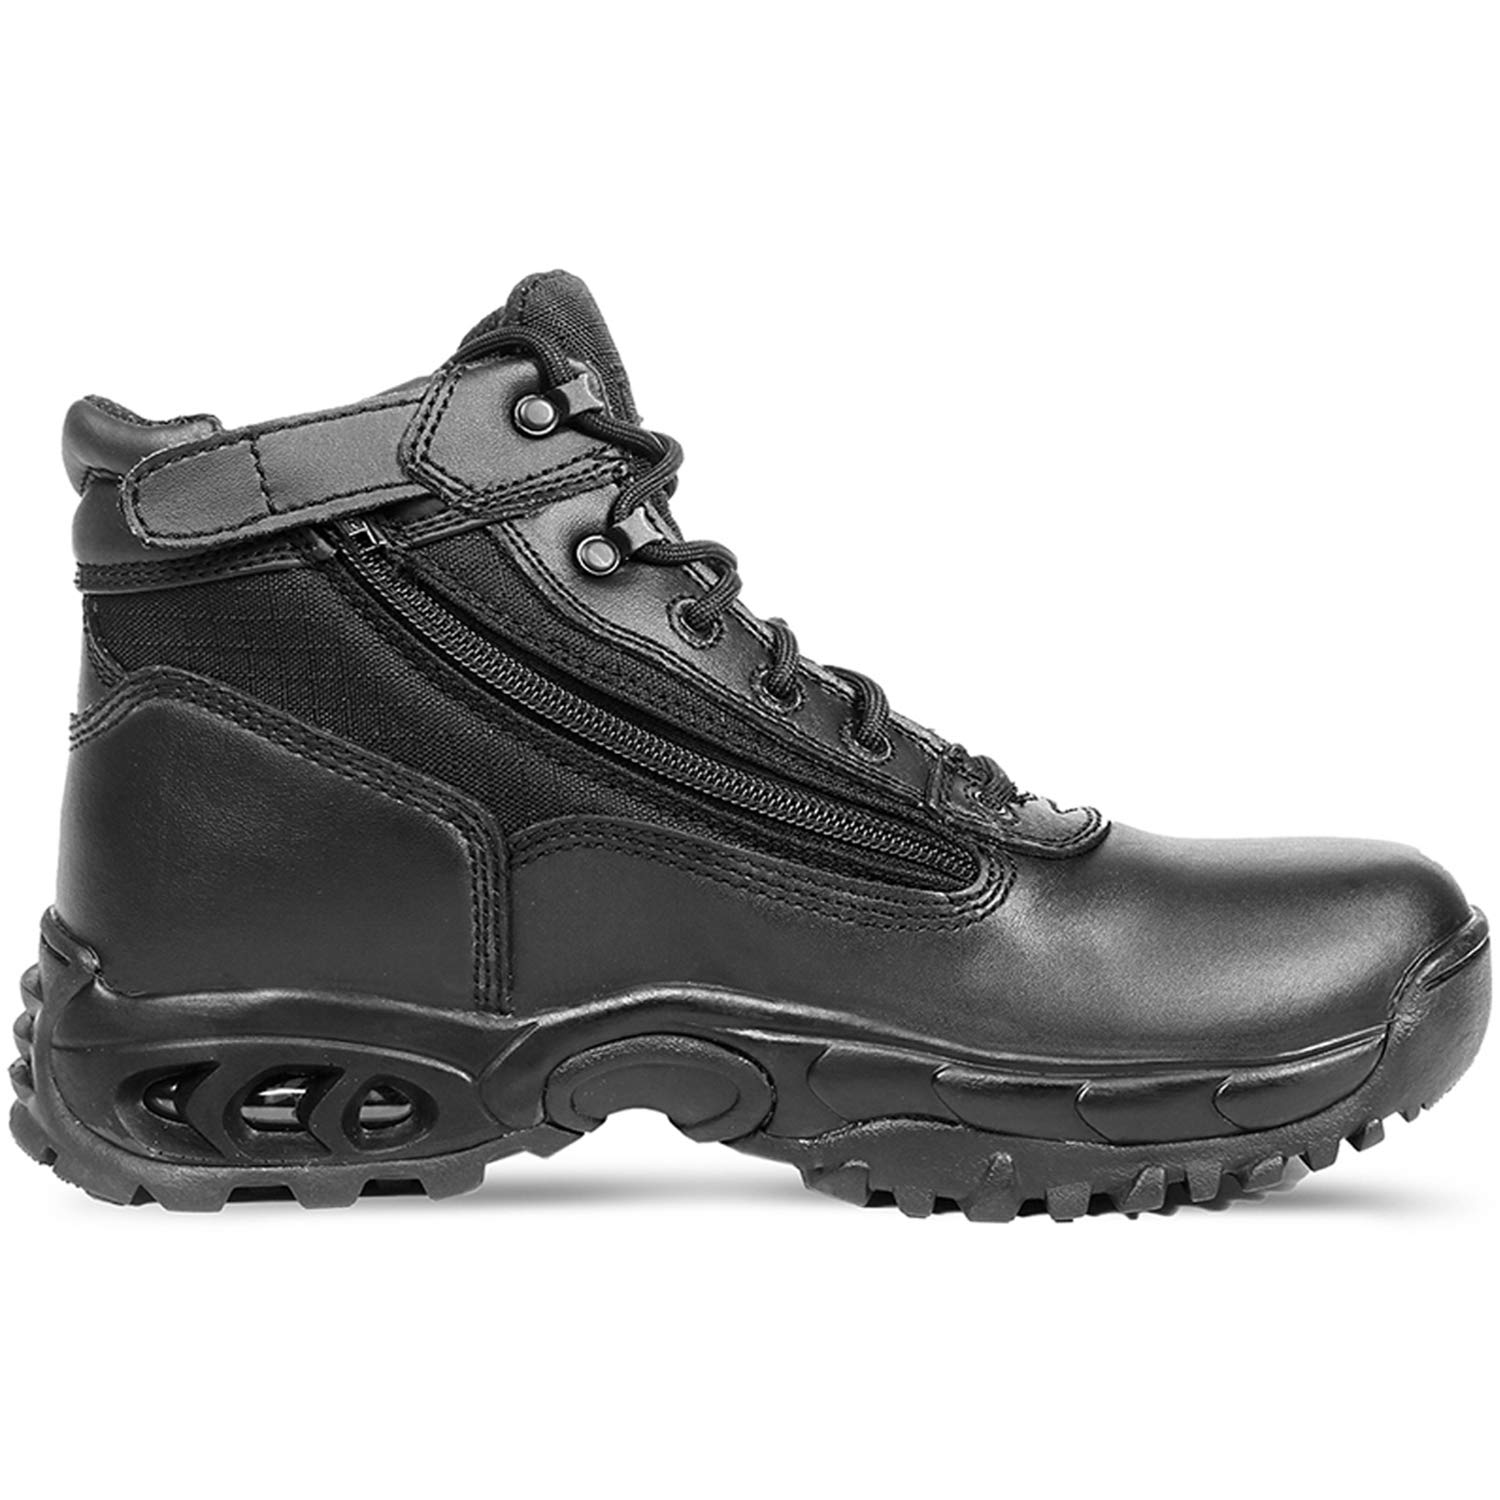 "Ridge Footwear 8003ST Men's 6"" Air-Tac Leather Steel Toe Tactical Work Boot"